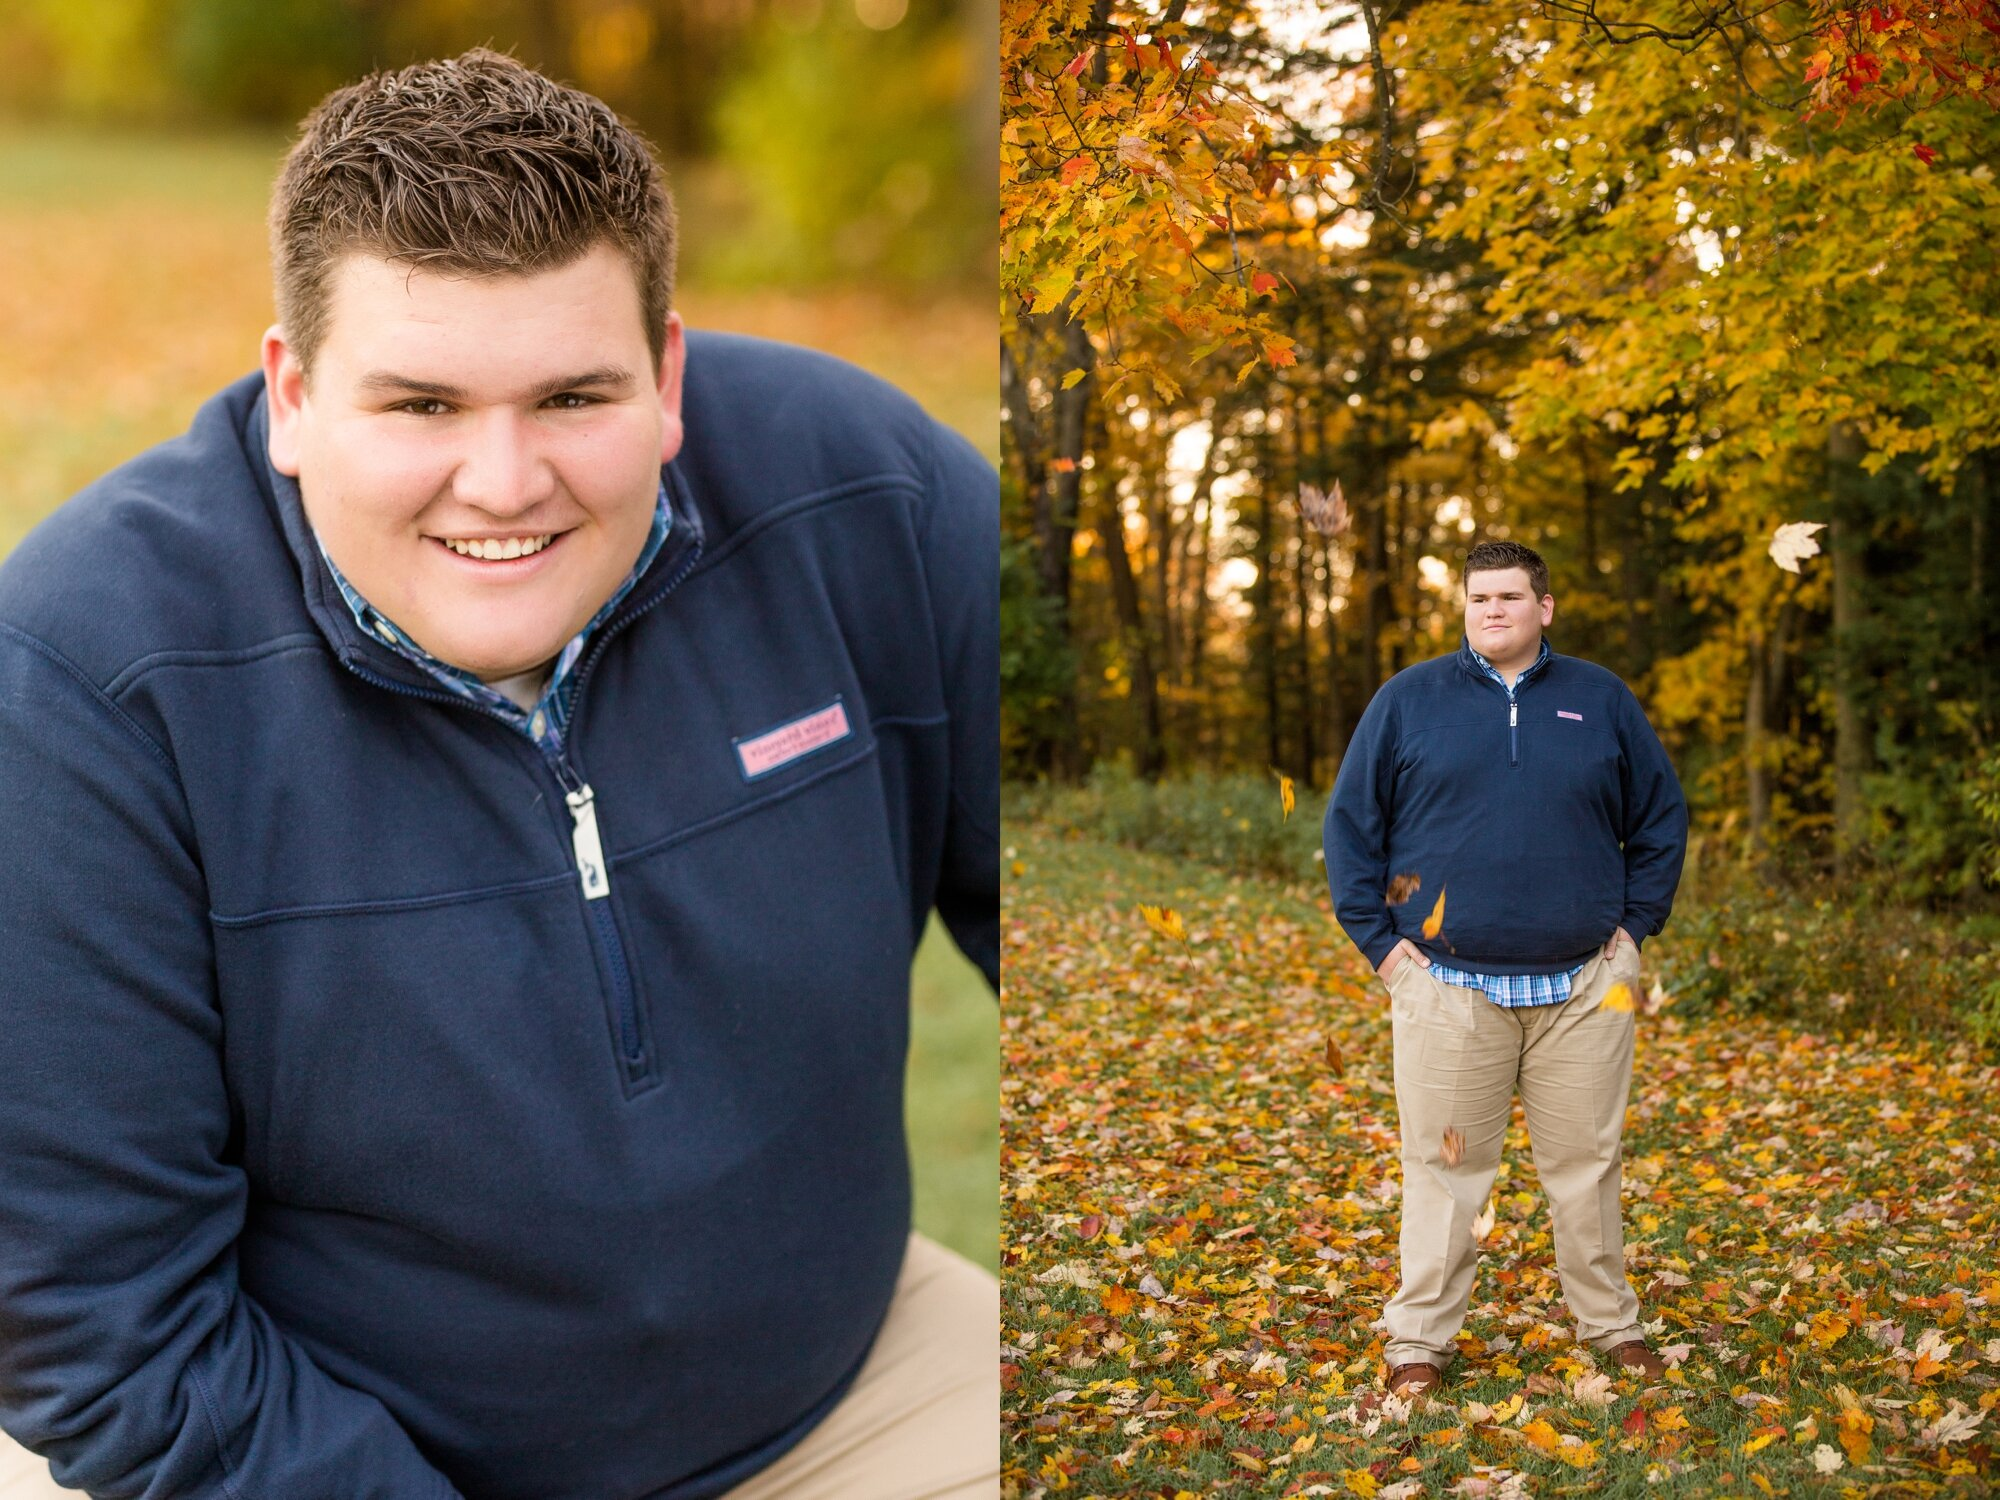 pittsburgh senior photographer, mcconnells mill senior photos, football senior photo ideas, locations for senior photos pittsburgh